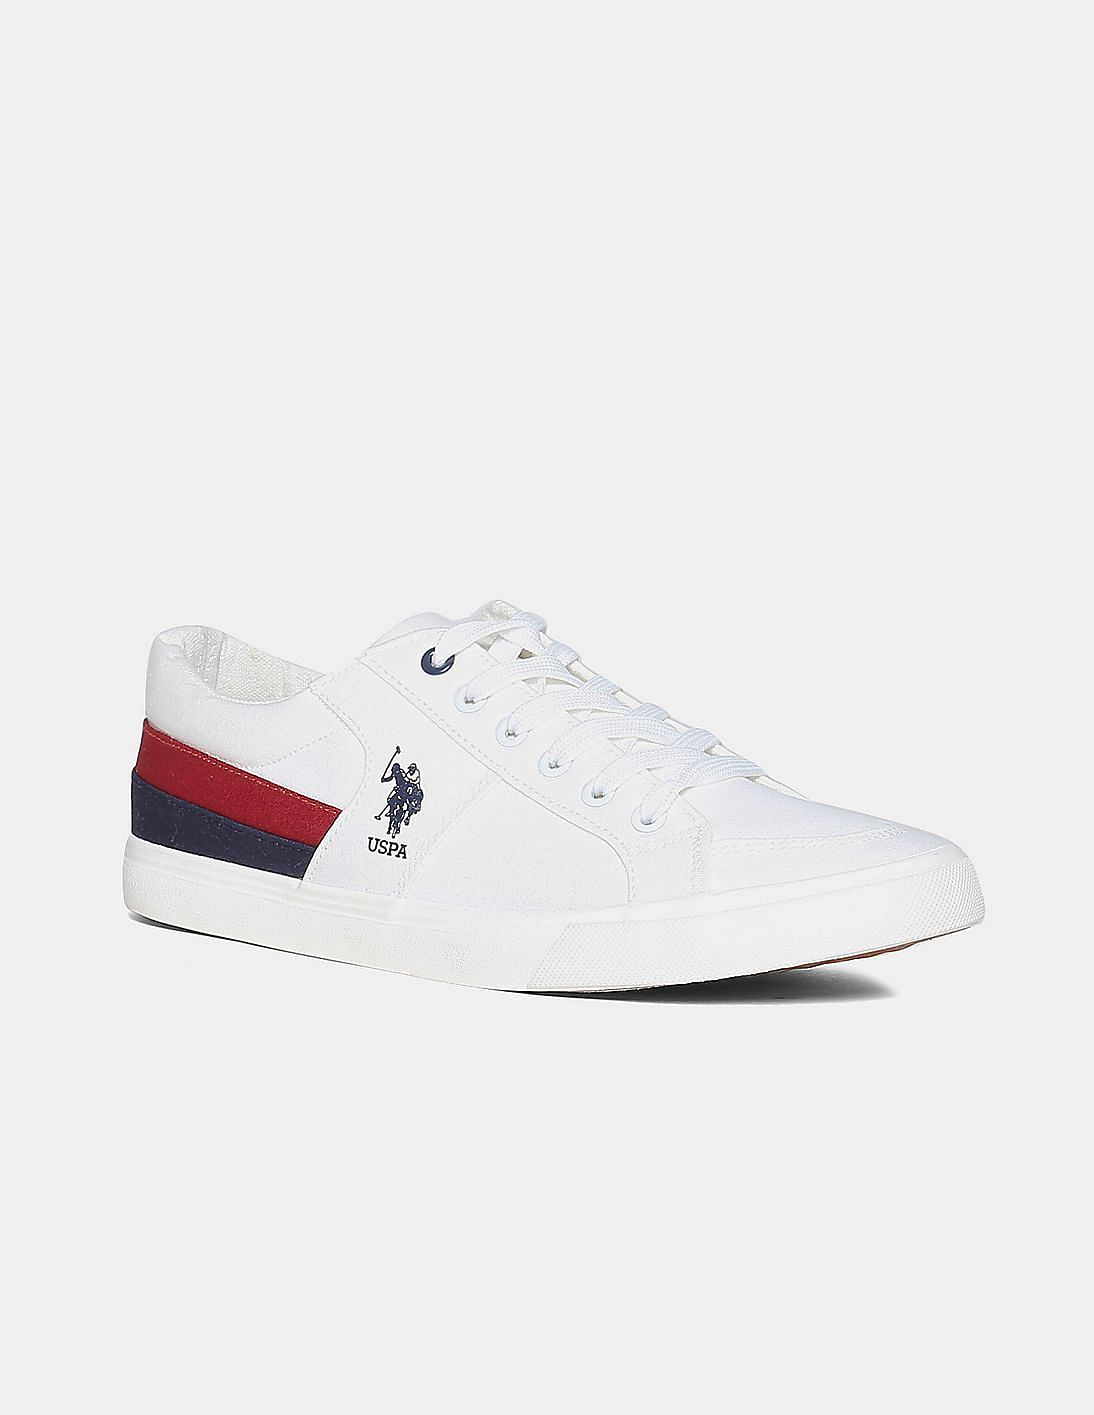 US Polo Assn.Canvas Lace Up Sneakers